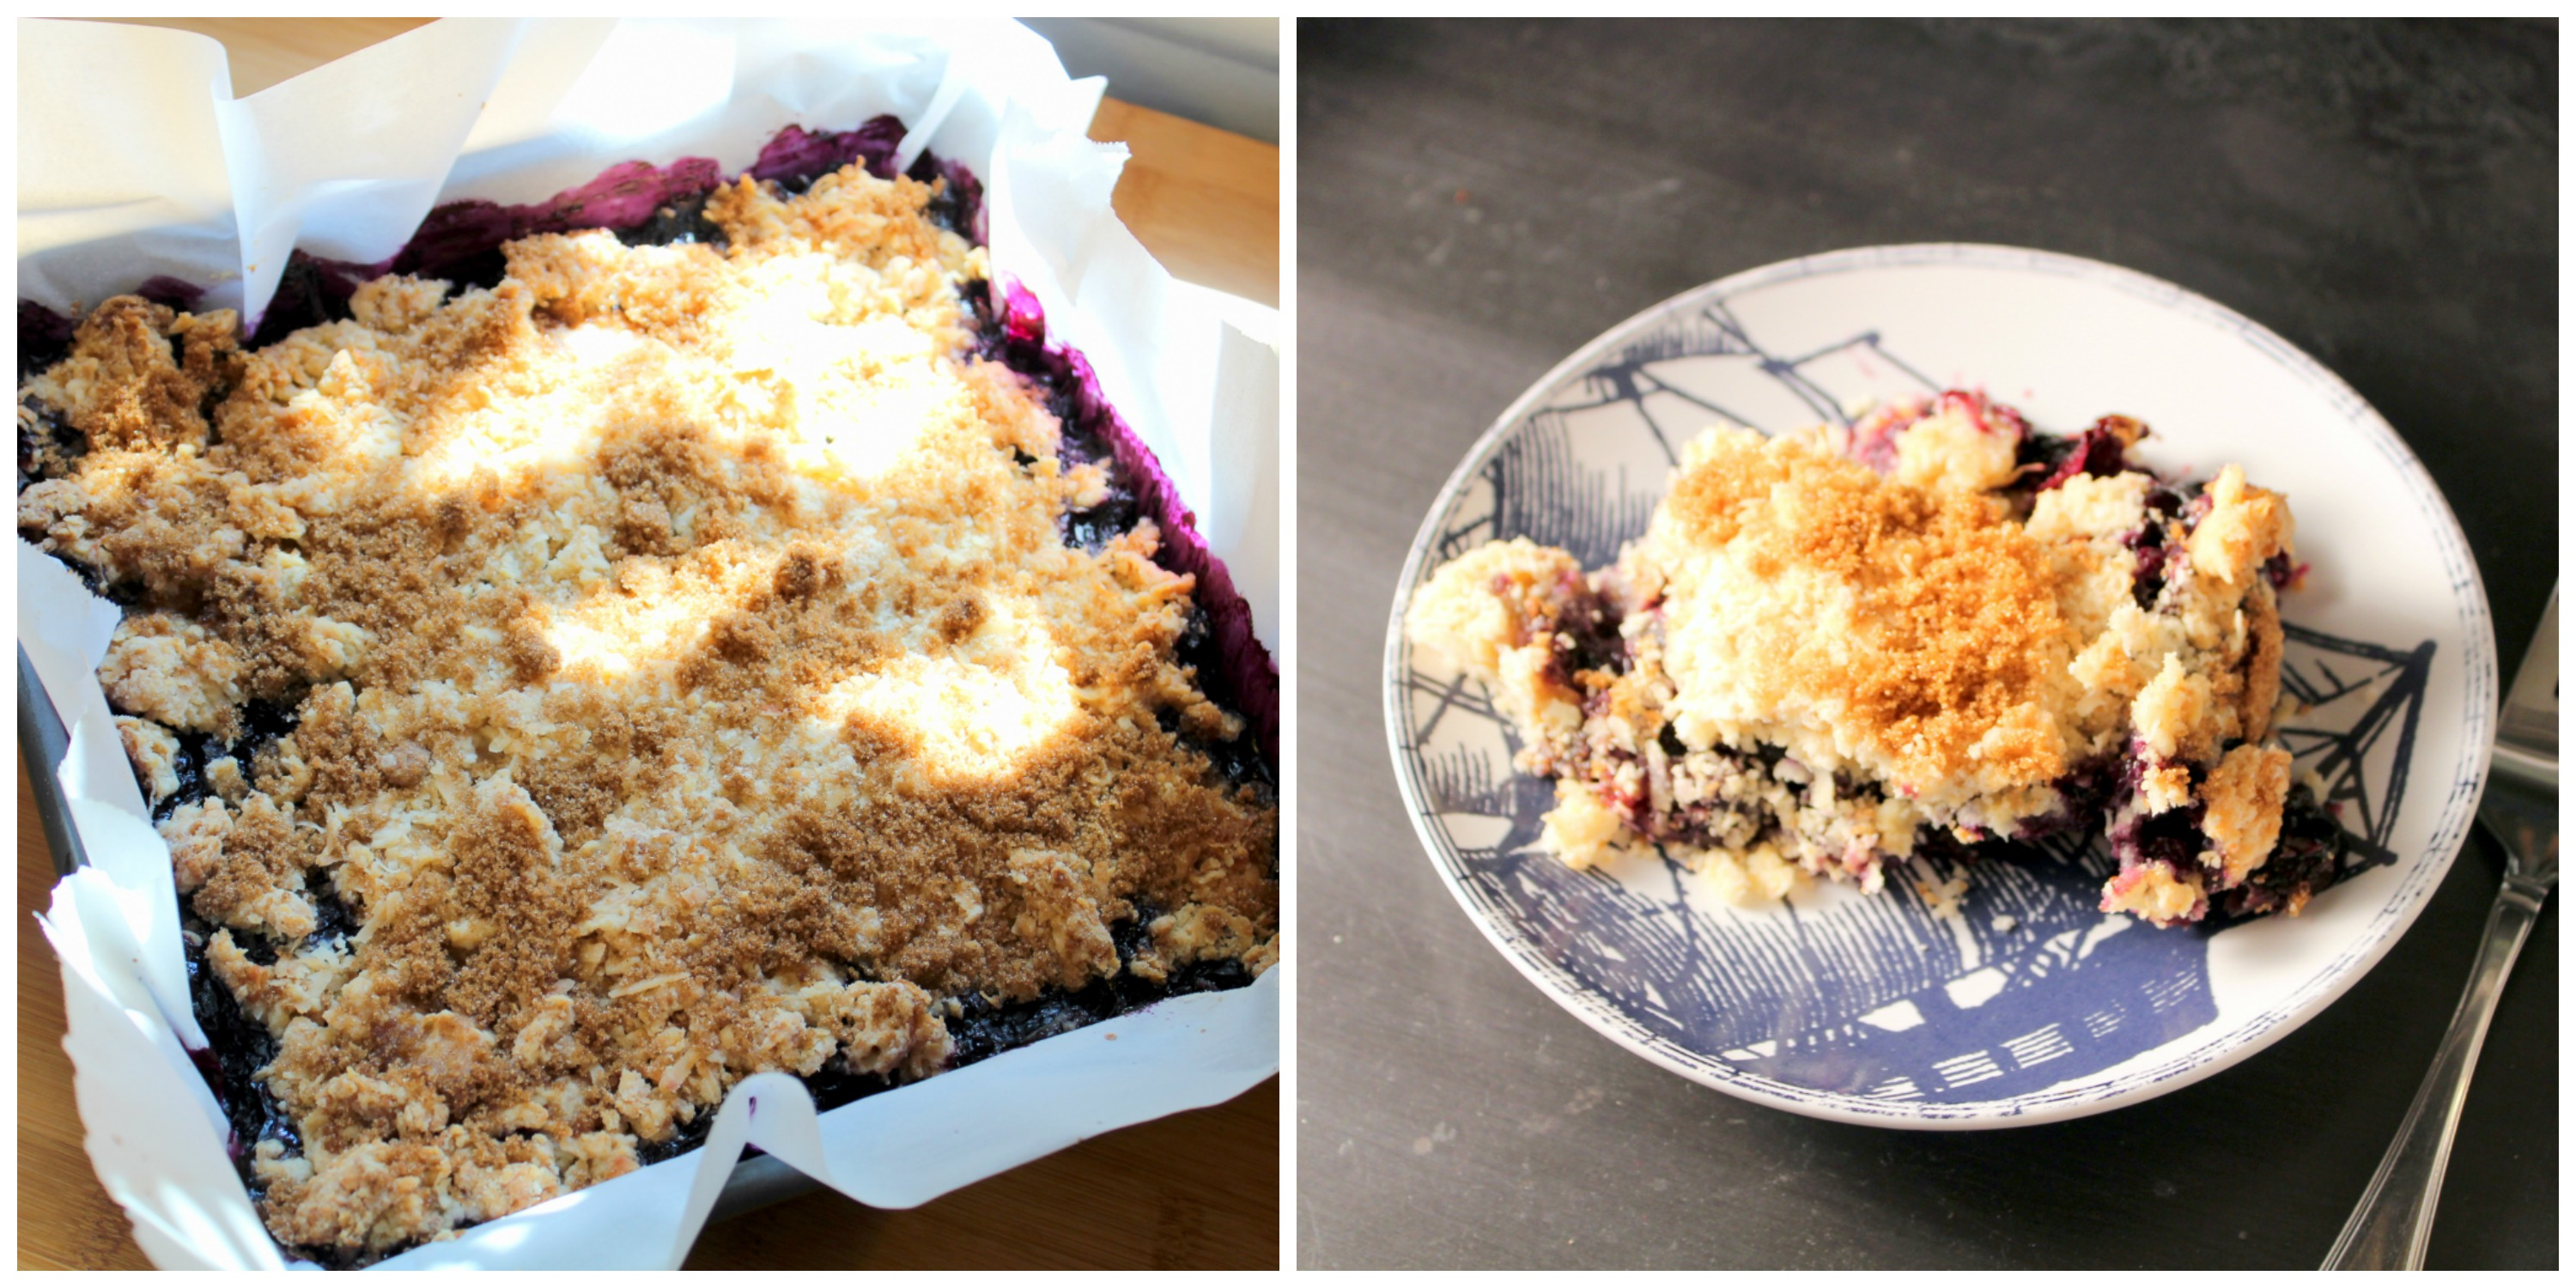 Coconut Blueberry Cobbler